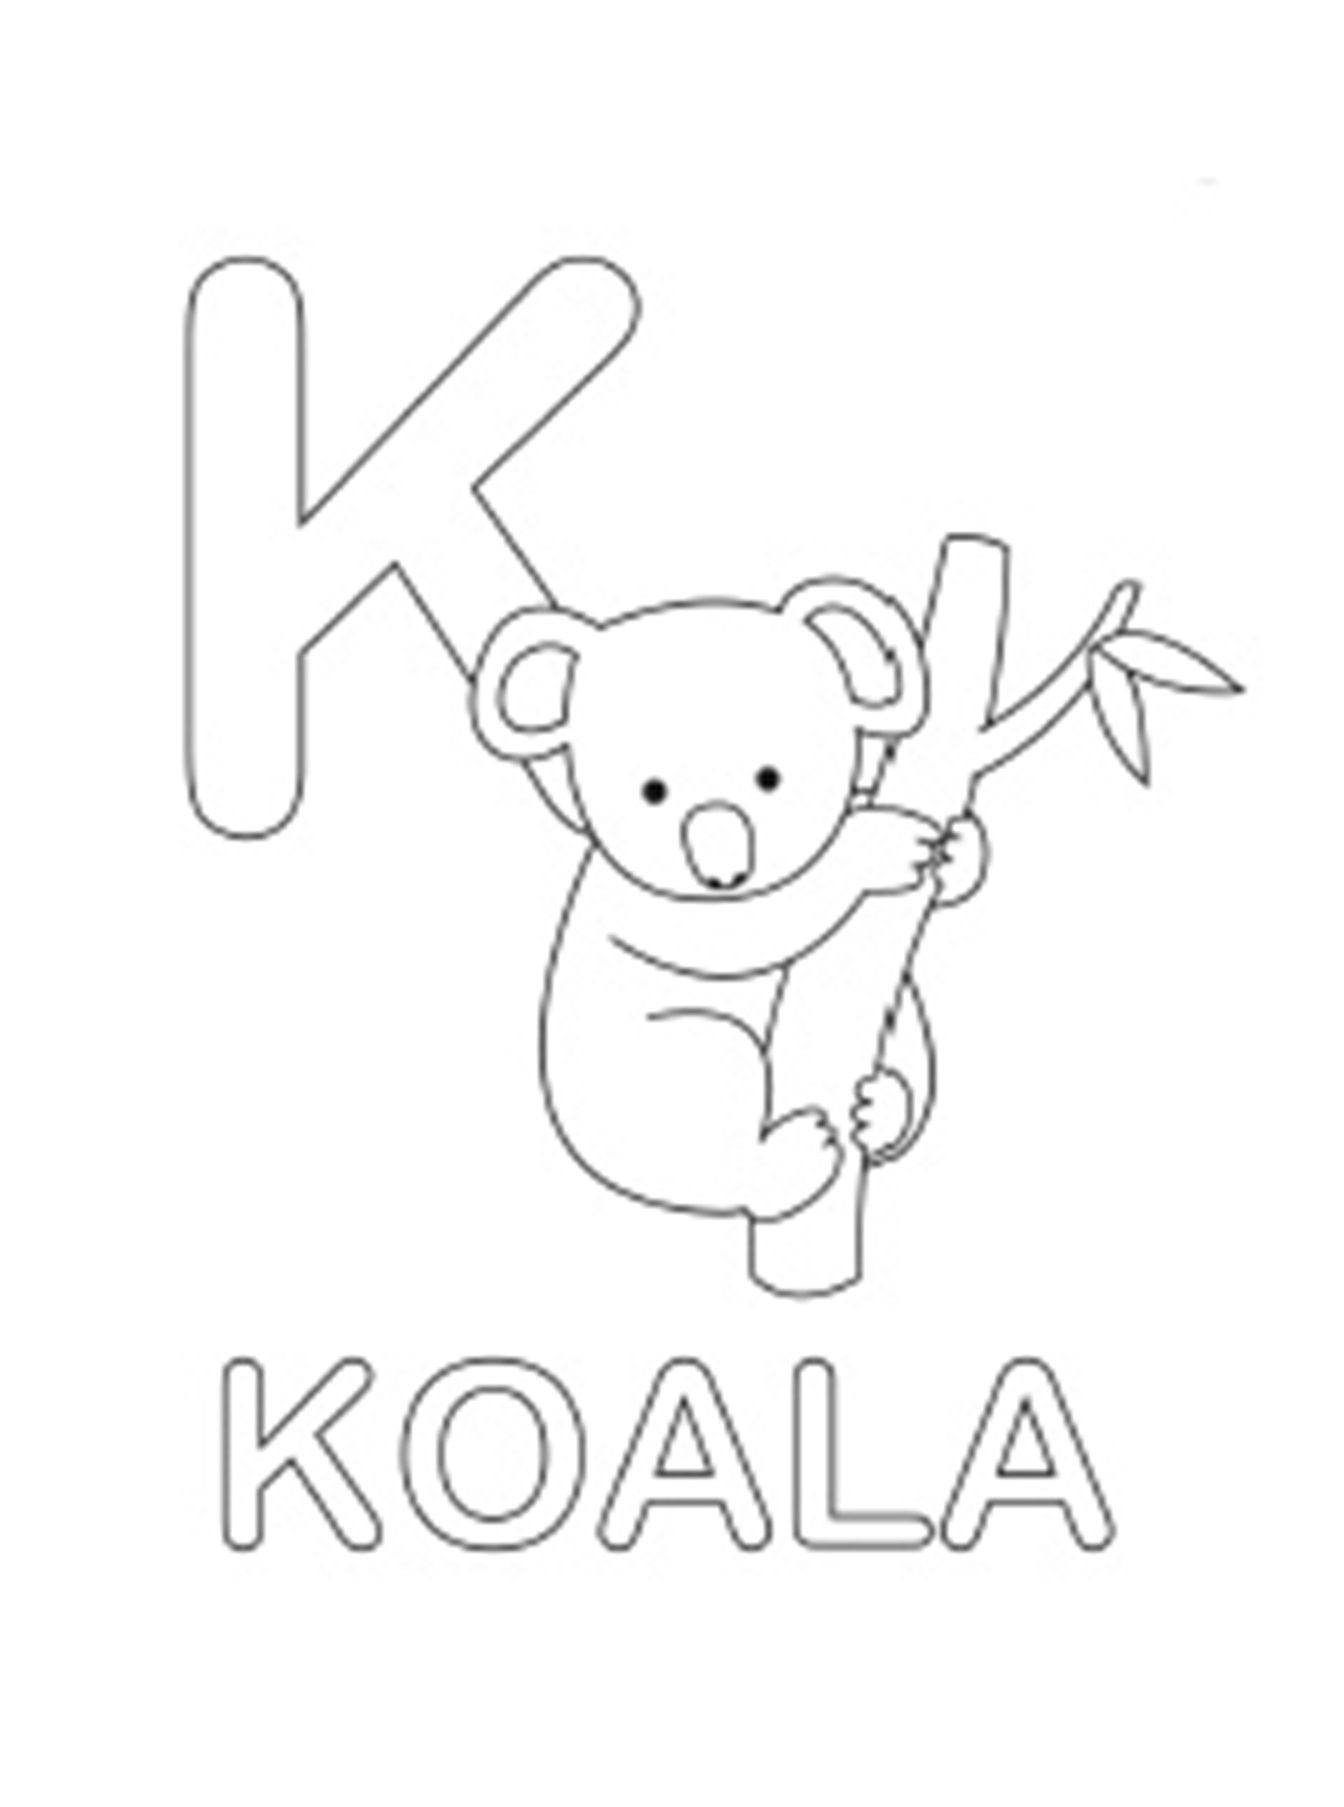 Koala Alphabet Coloring Pages Free